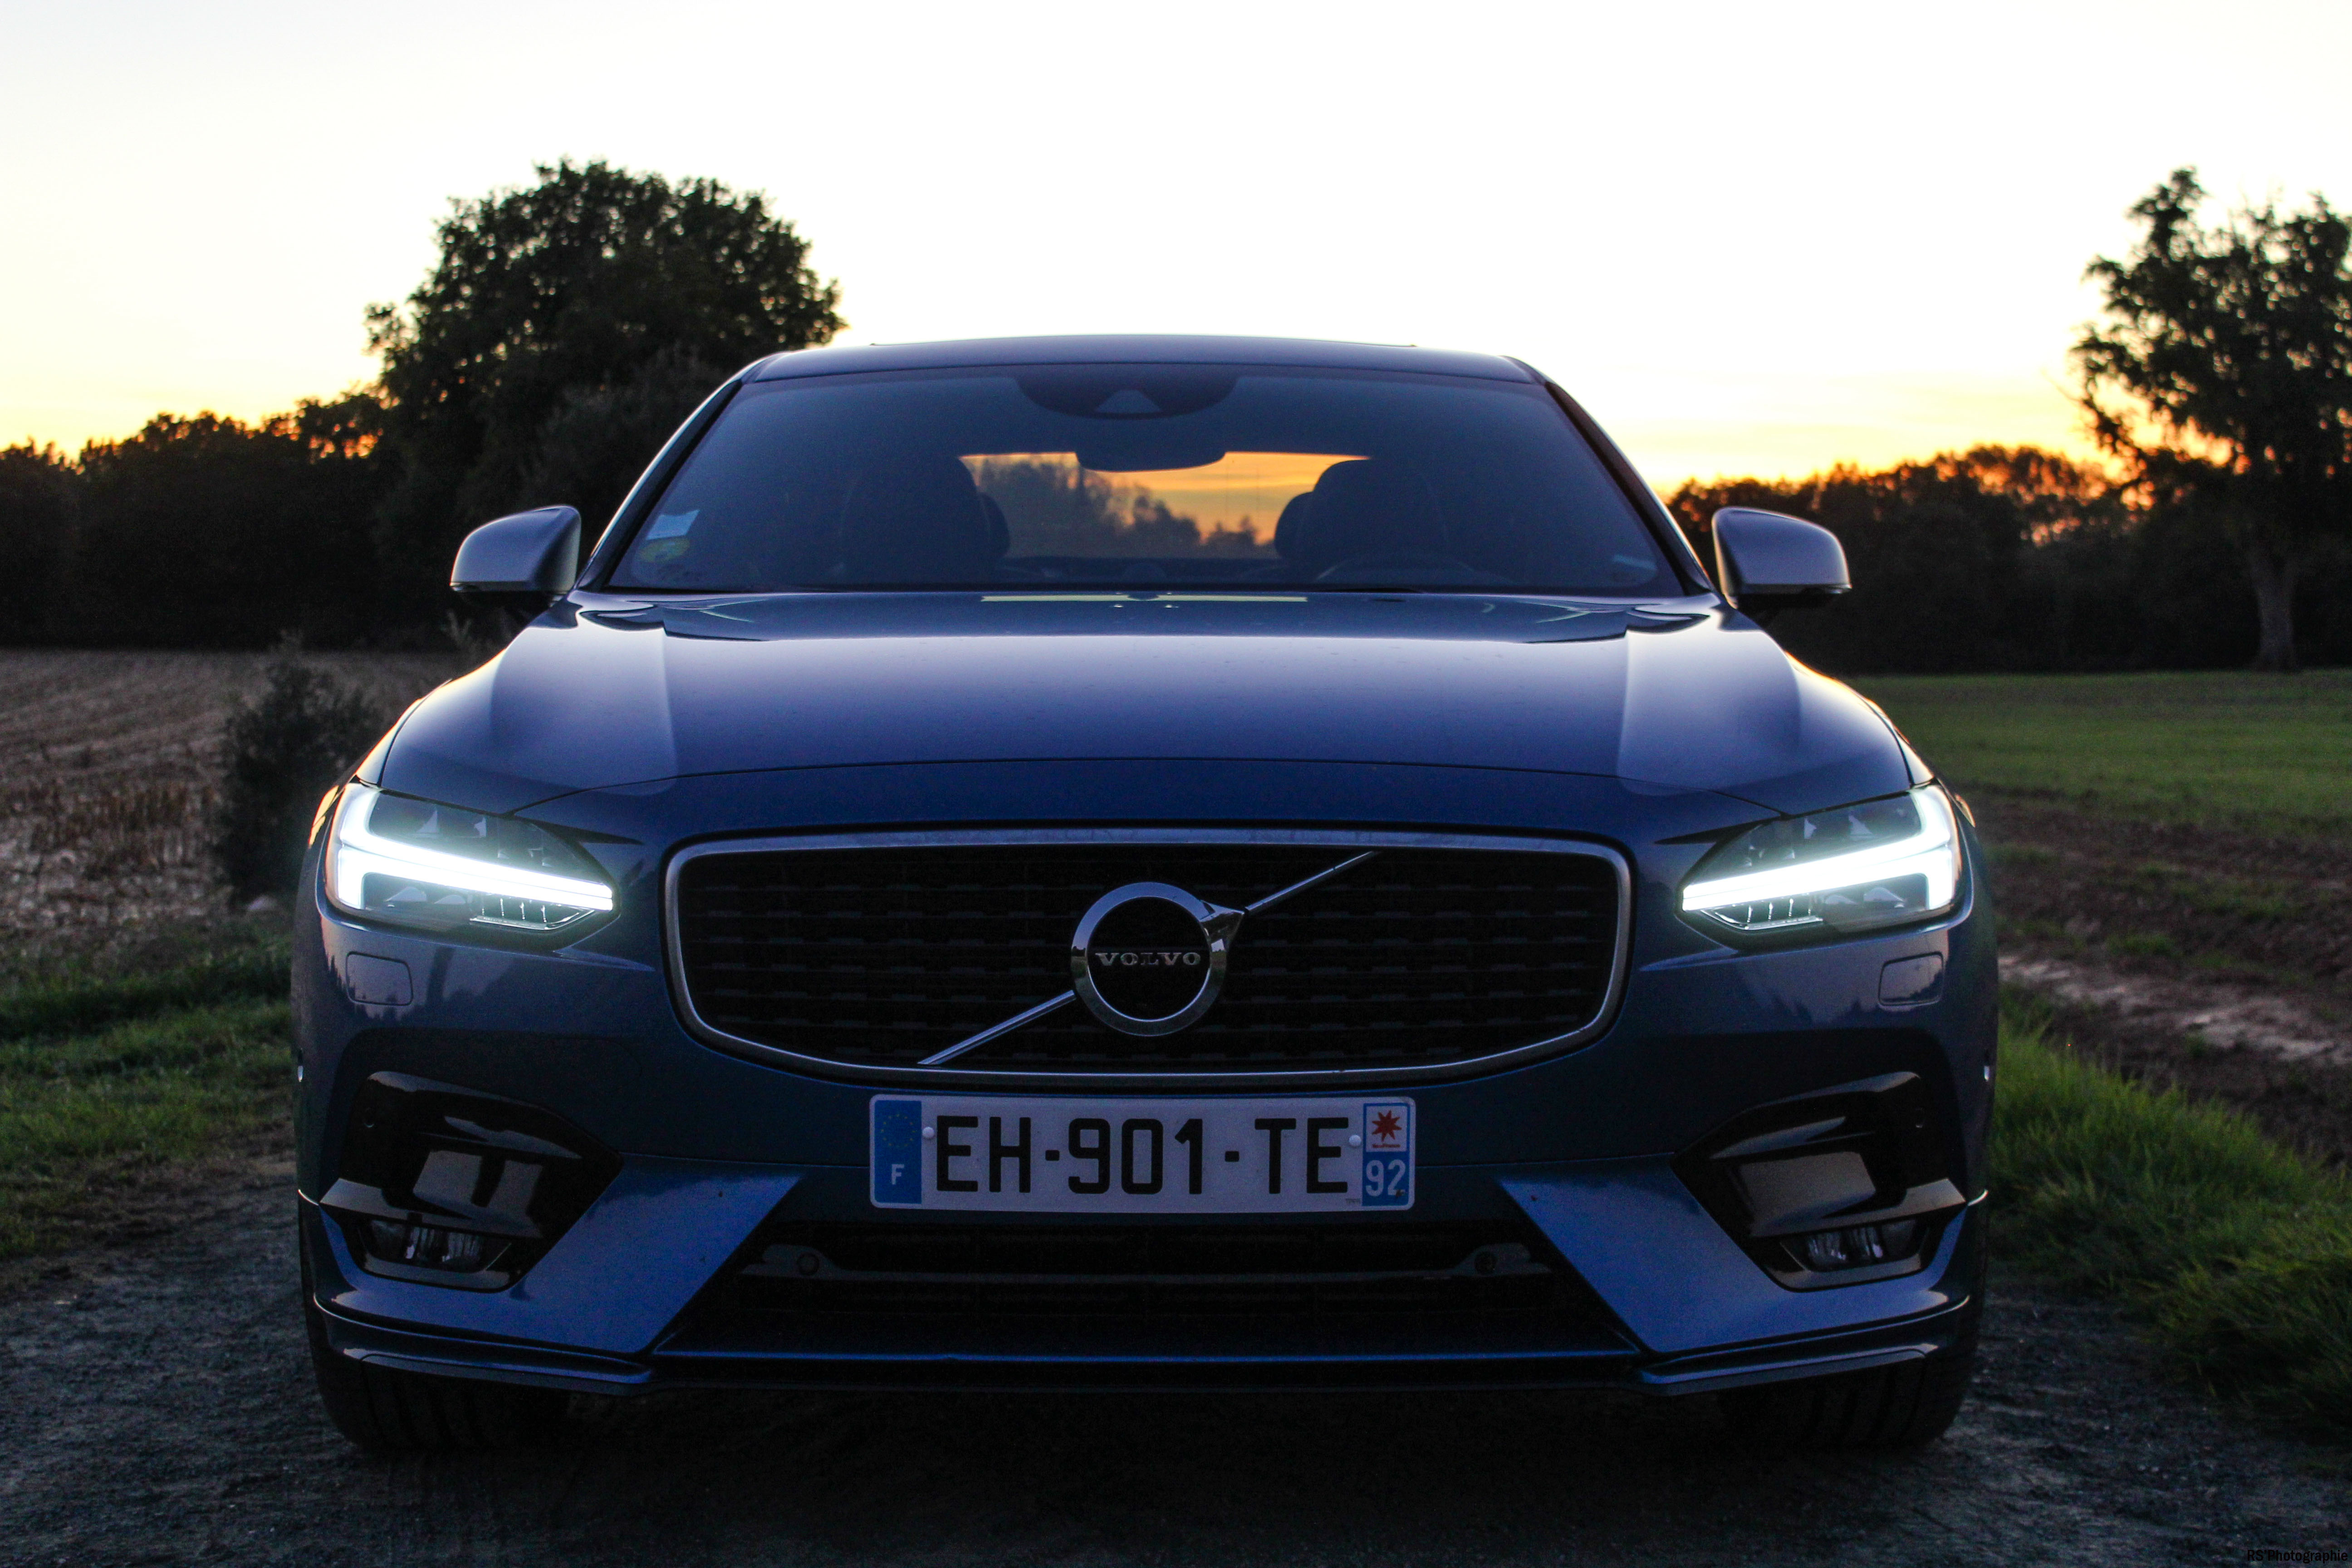 volvos9065-volvo-s90-d3-avant-front-Arnaud Demasier-RSPhotographie